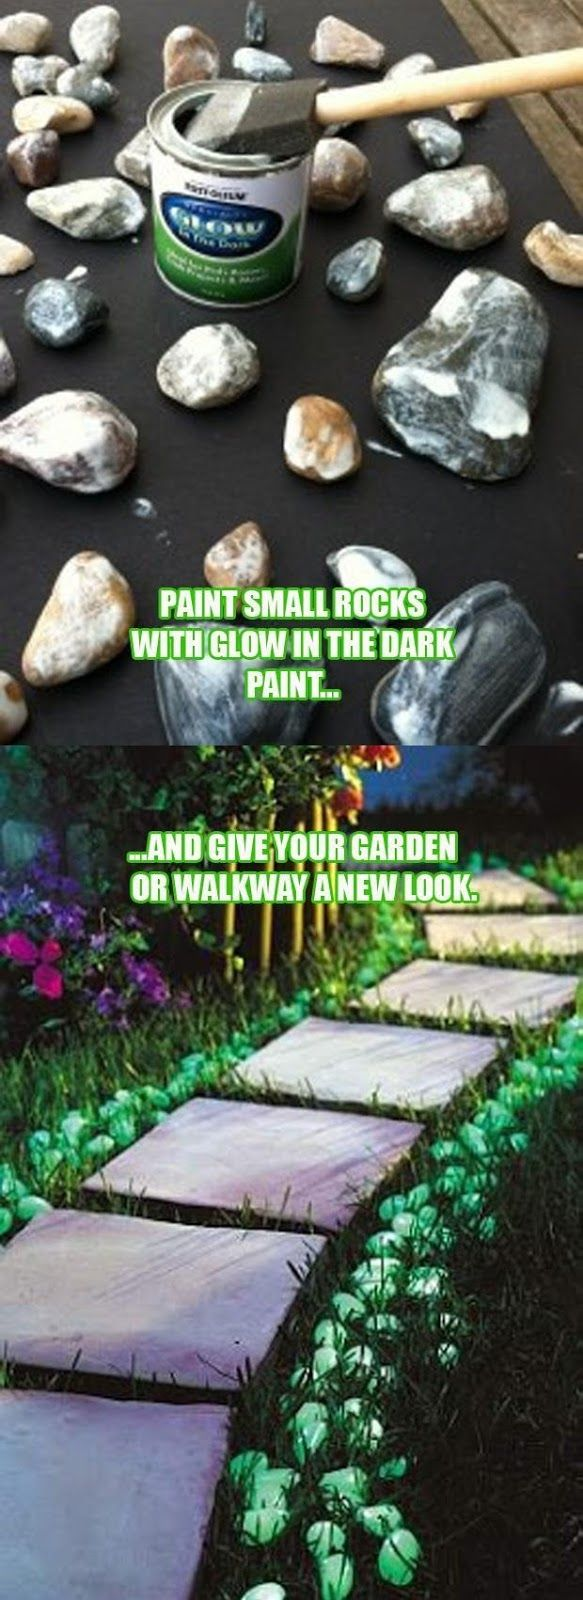 "GLOW ROCKS:  Glow in the dark paint rules!!  This would be great for campsites or an ""Easter egg"" hunt for kids at night."